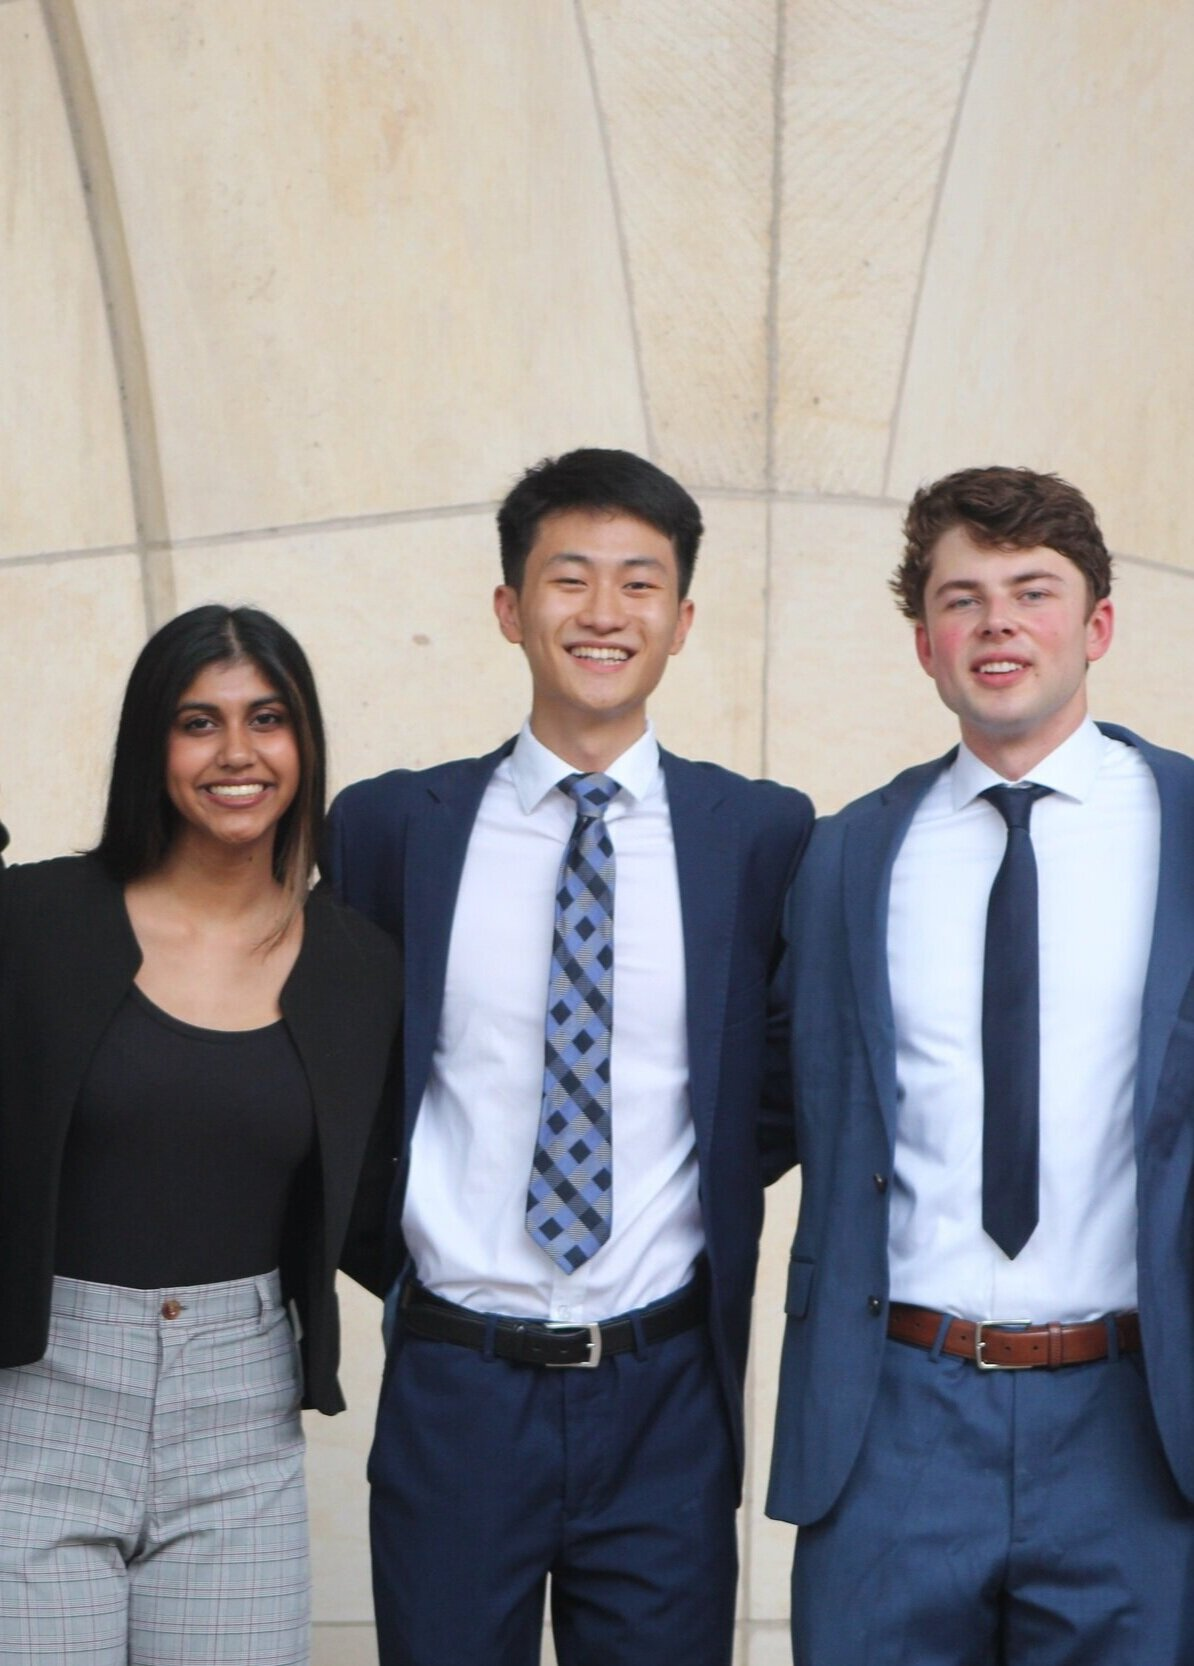 About Us - Texas Consulting is the premierstrategy consulting organization at the University of Texas at Austin. Our organization was founded by a group of undergraduate students with a love for problem solving in late 2018. Since then, Texas Consulting has offered pro-bono consulting services to clients in a wide variety of industries across the country.At the heart of Texas Consulting is its people. Our students come from a broad range of disciplines ranging from finance to biomedical engineering, and demonstrate a commitment to consistent excellence and growth. This enables our teams to consider client projects with a holistic perspective, devise innovative strategies, and pitch actionable business solutions that help maximize our clients' growth potentials.Our mission at Texas Consulting is to build tomorrow's leaders by empowering our members to approach ambitious challenges without fear. Central to our organization is an authentic love for problem solving, diversity of perspective, and strong work ethic. Relationships with our partners are mutually beneficial and based on trust and consistently exceptional results from our project teams.